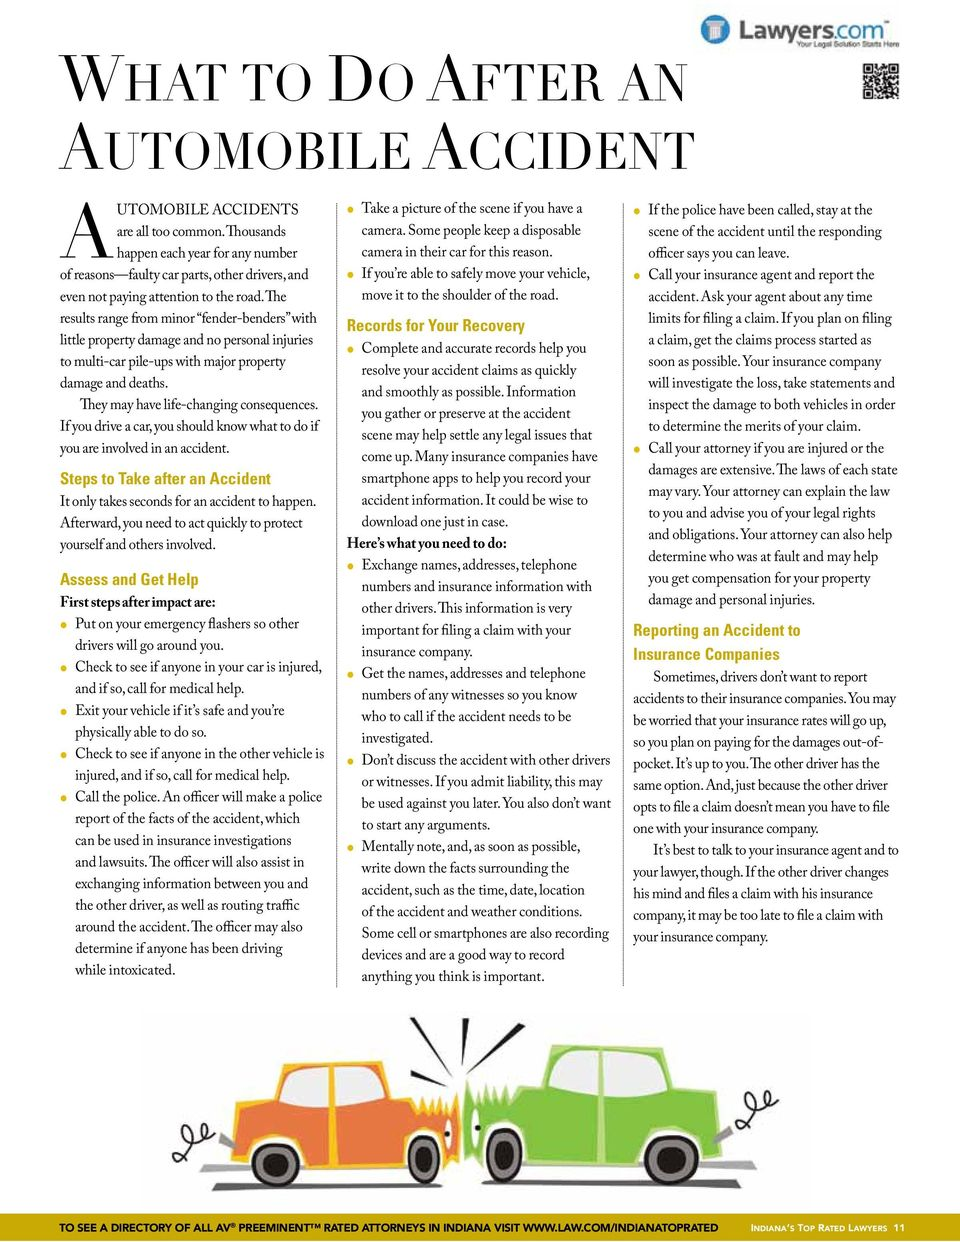 The results range from minor fender-benders with little property damage and no personal injuries to multi-car pile-ups with major property damage and deaths. They may have life-changing consequences.